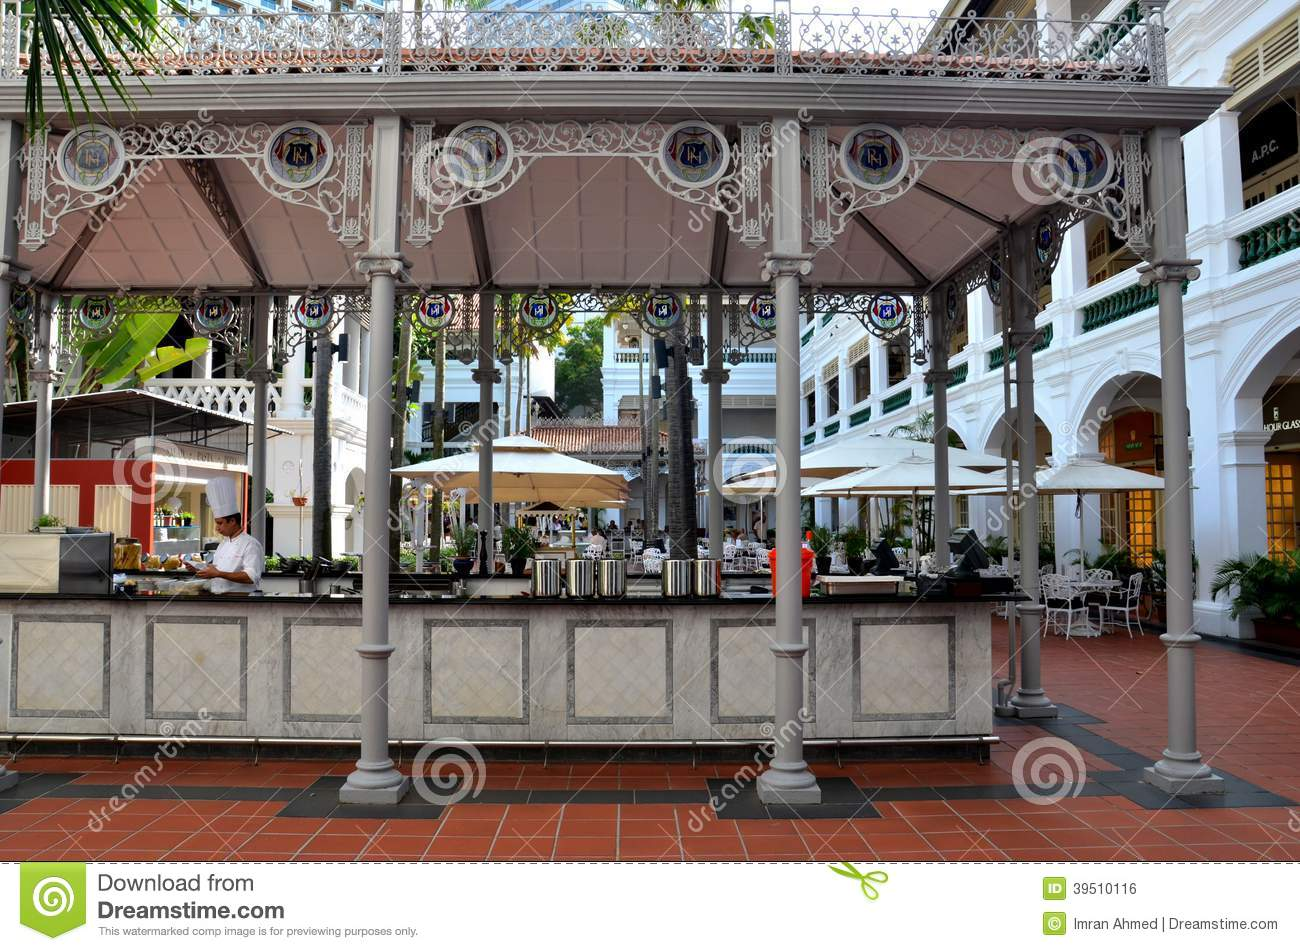 Raffles Hotel Courtyard bar and restaurant Singapore